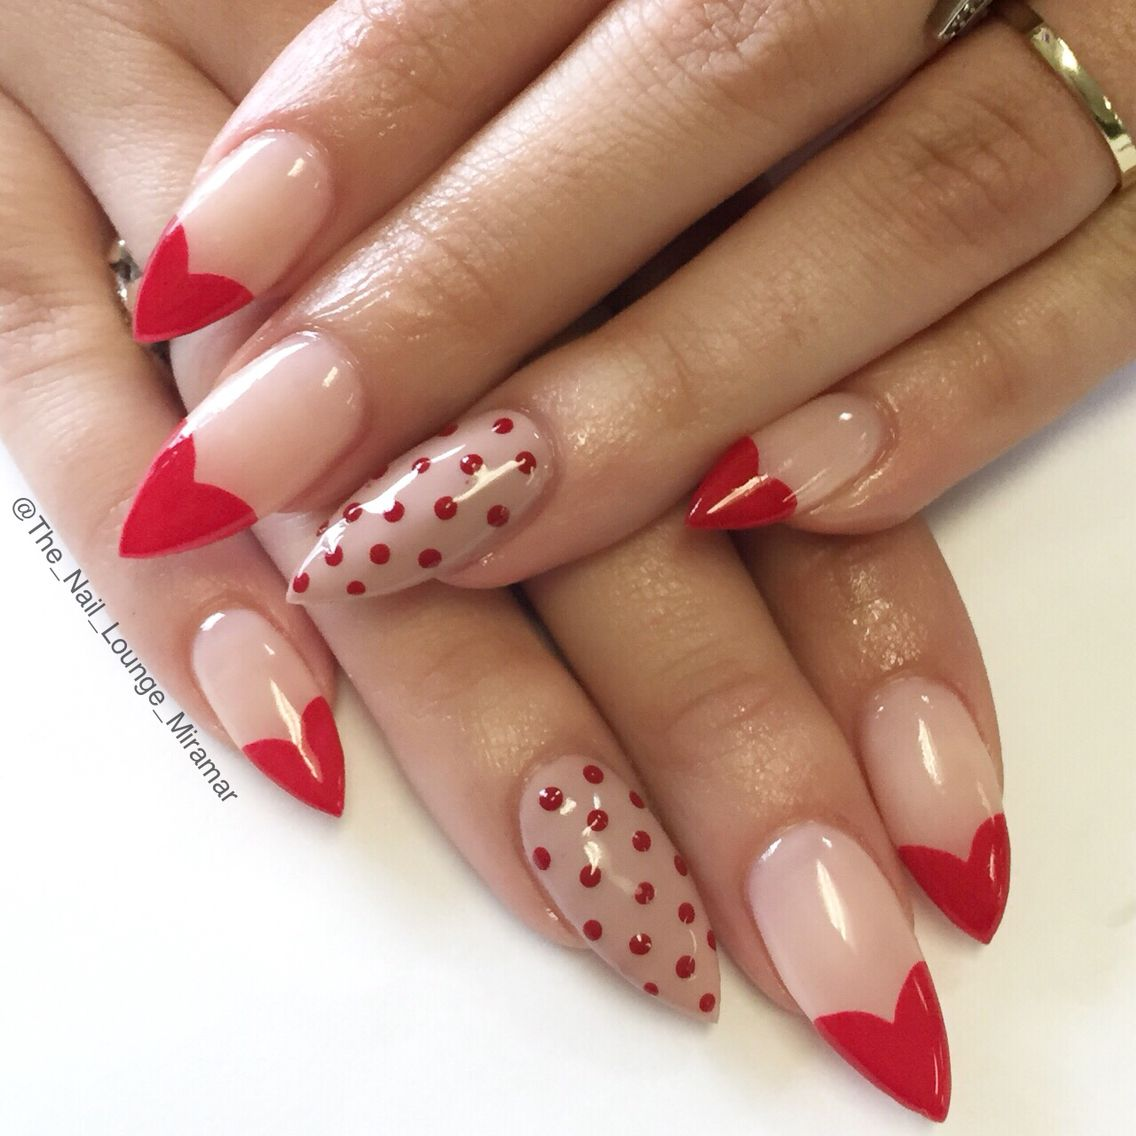 Stiletto Valentine S Day Nail Art Design Nail Designs Valentines Valentine Nail Art Valentine S Day Nails